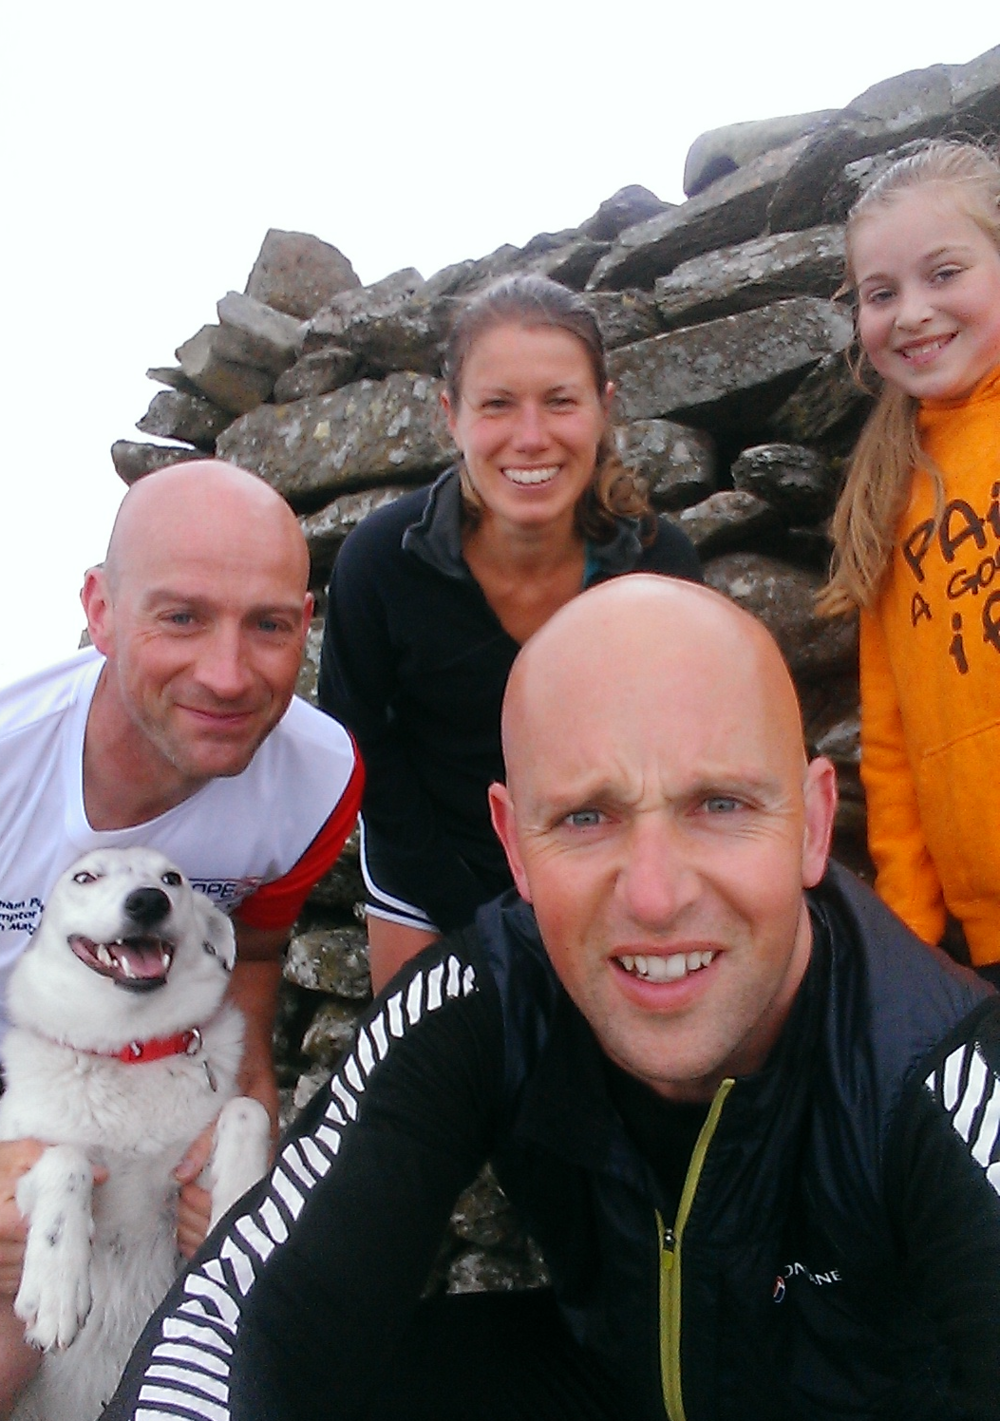 Ciara, Katie, Snooby, Phil and I pausing on a cool Foel Offrwm for a Summit Selfie